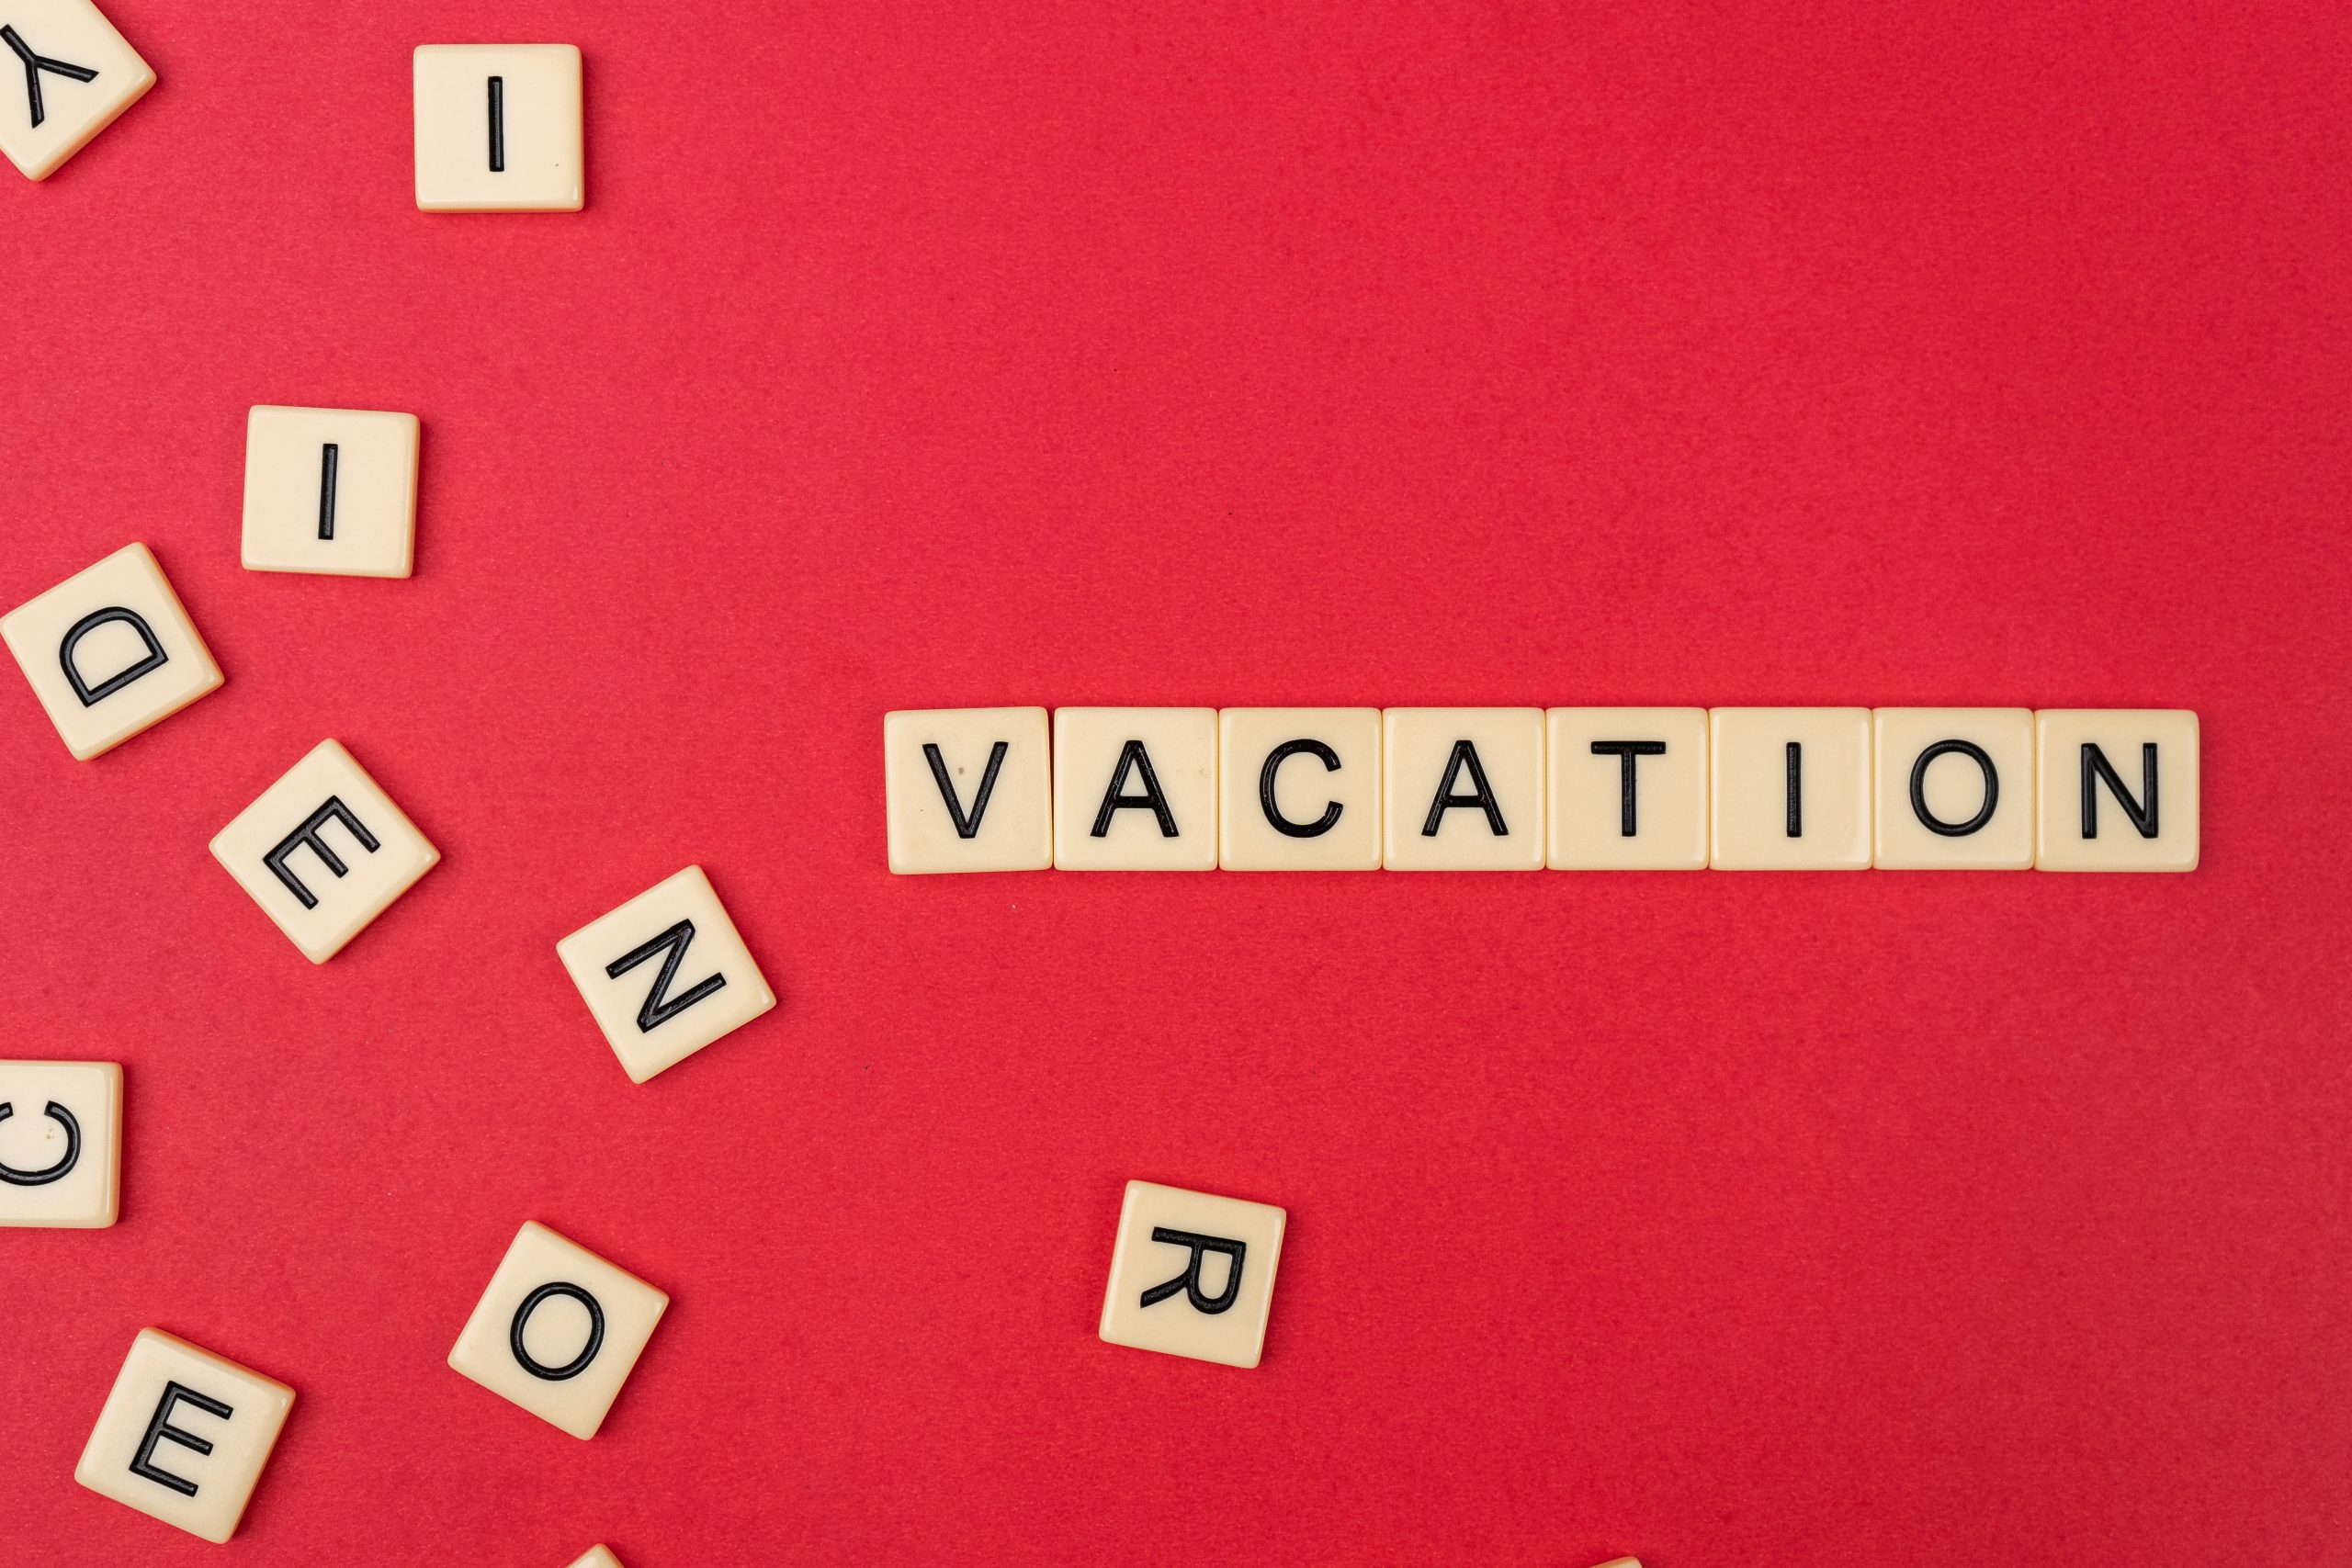 Vacation written with scrabble